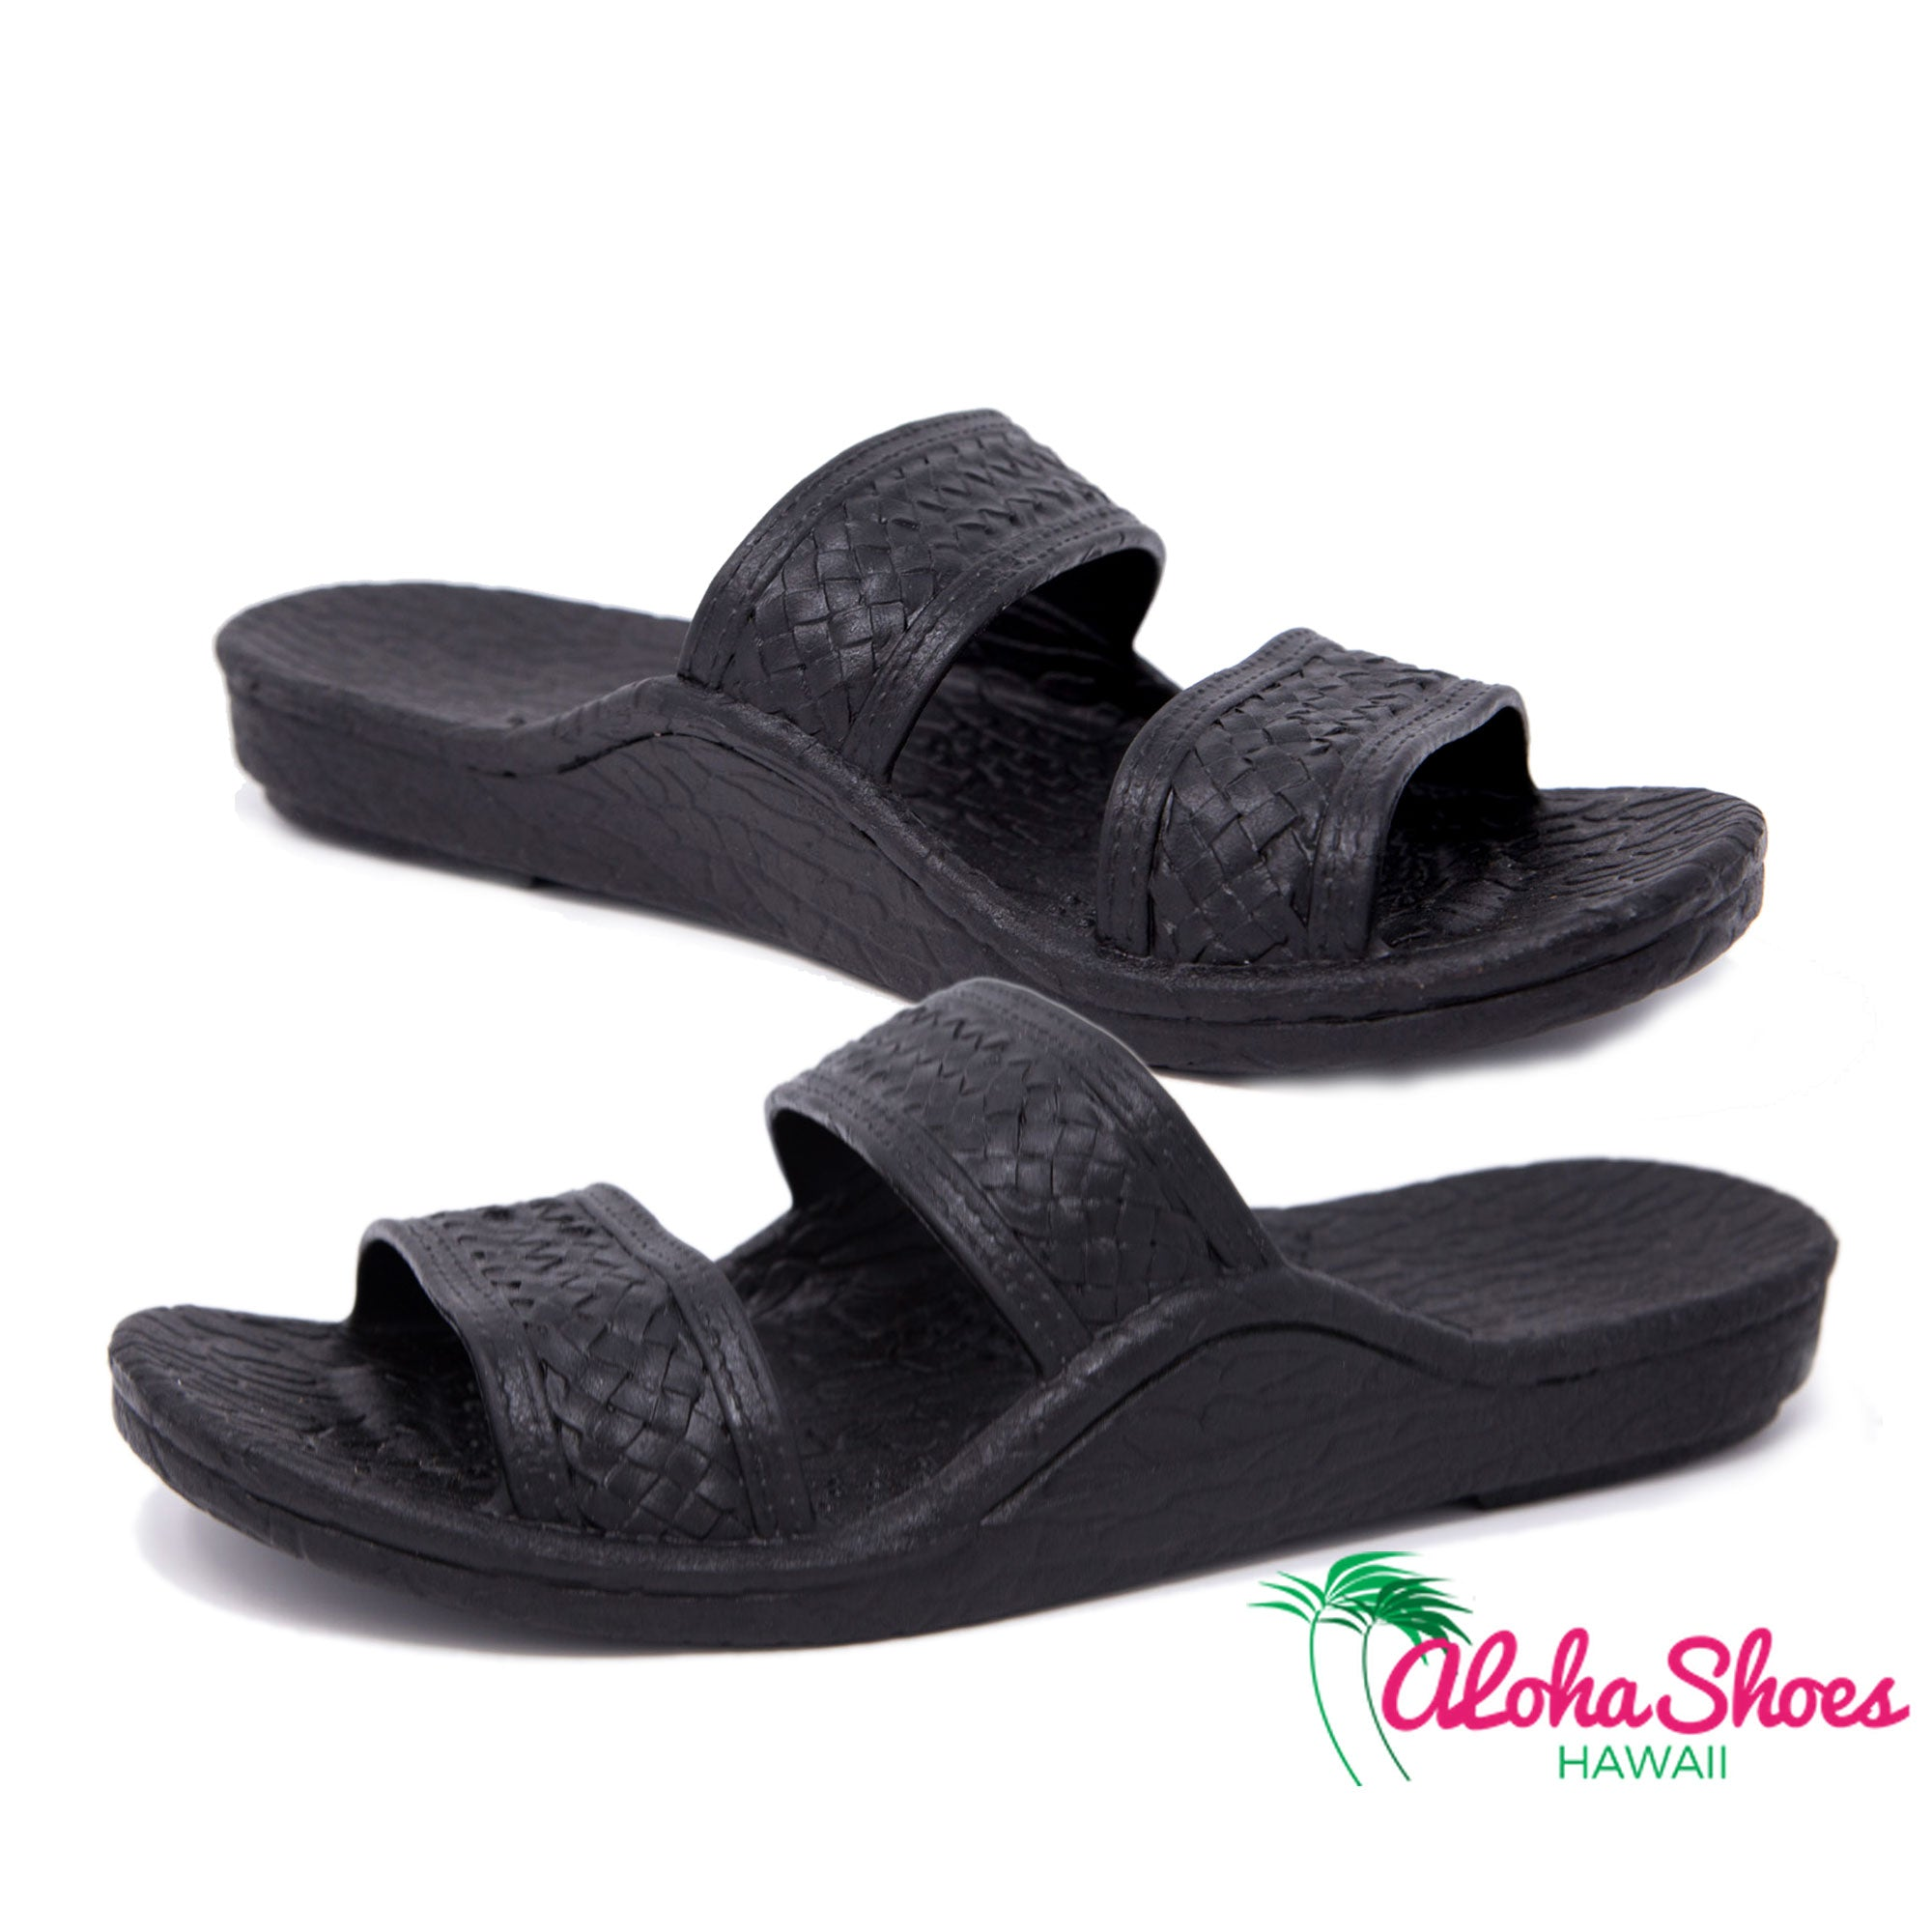 Jandals from Hawaii on Aloha Shoes